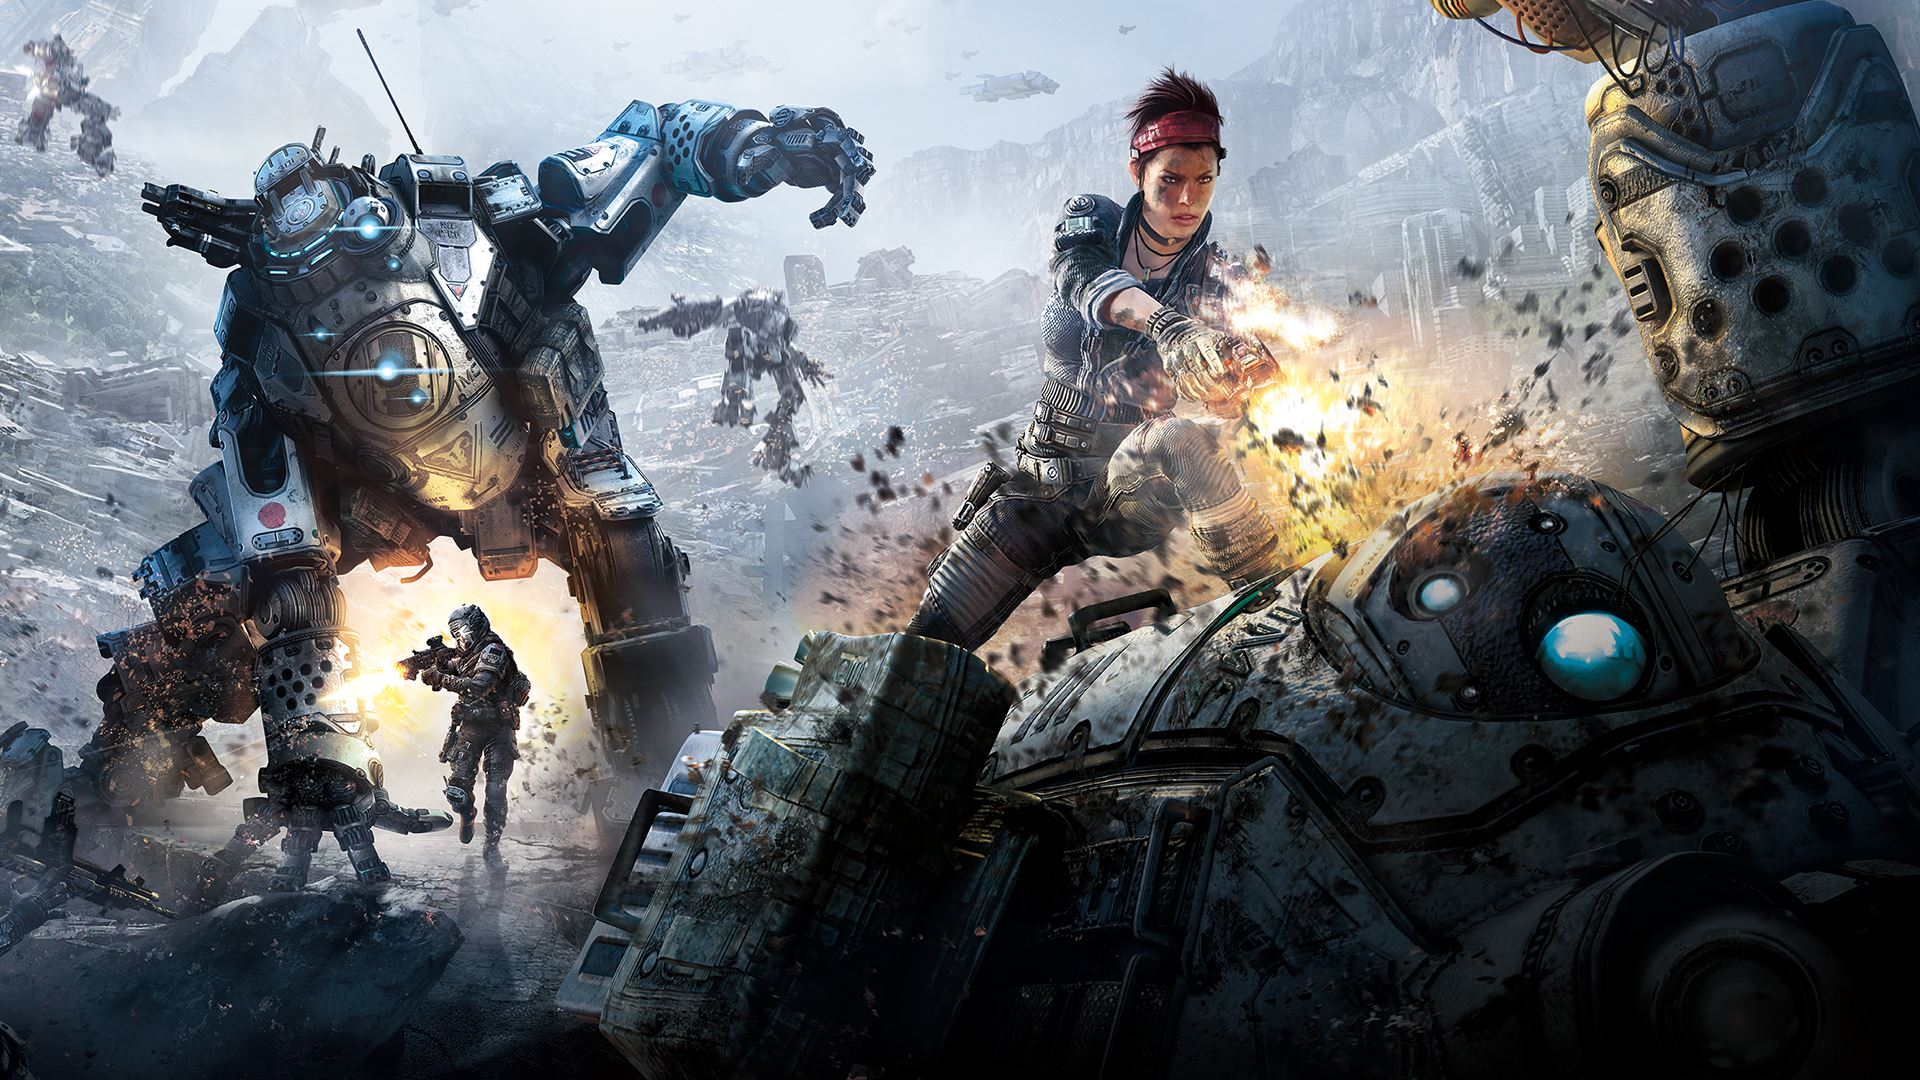 Titanfall devs are working on a virtual reality game